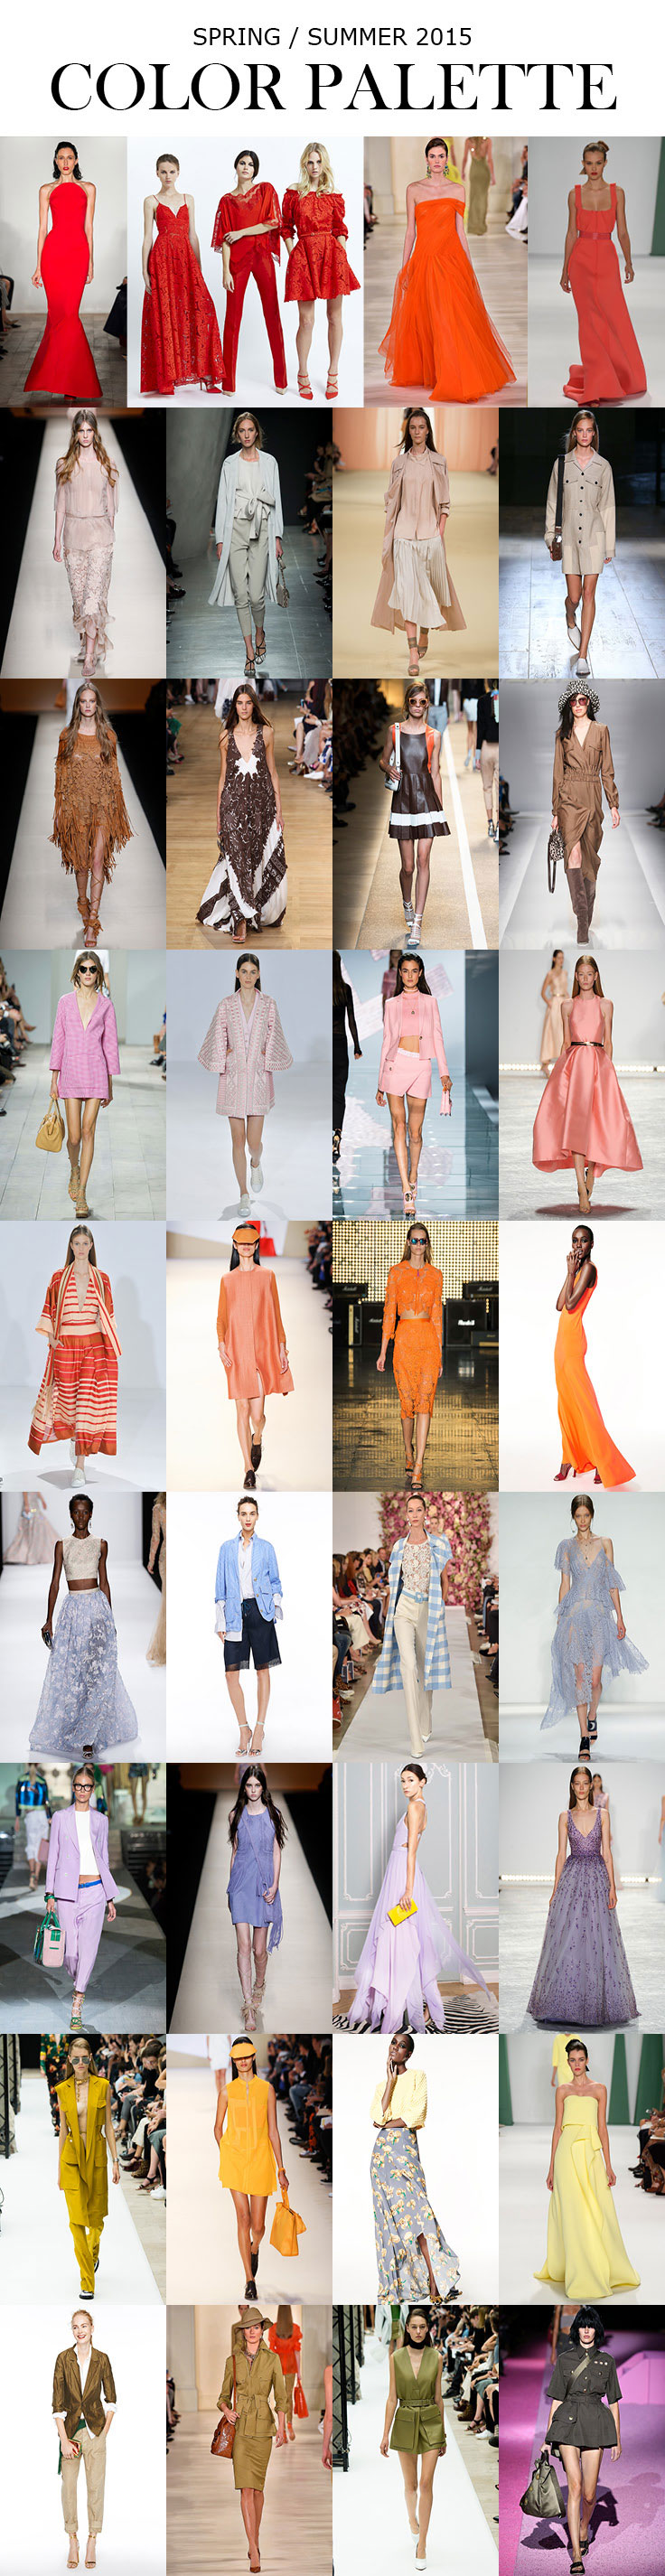 Must Have Spring / Summer Trends for 2015